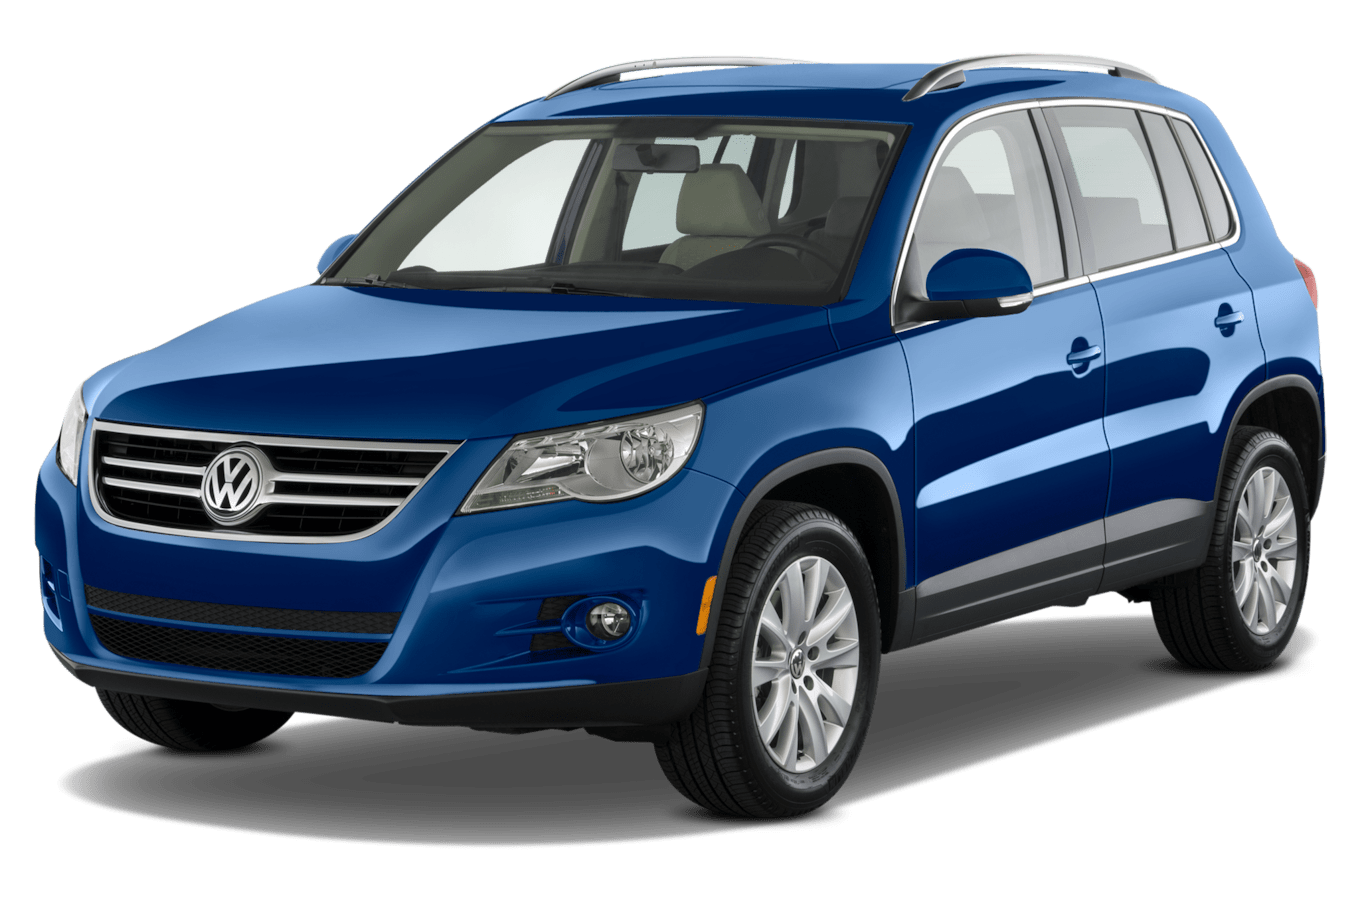 2010 volkswagen tiguan reviews and rating motortrend vw tiguan fog lamp vw tiguan fuse box melted [ 392:261 x 1360 Pixel ]